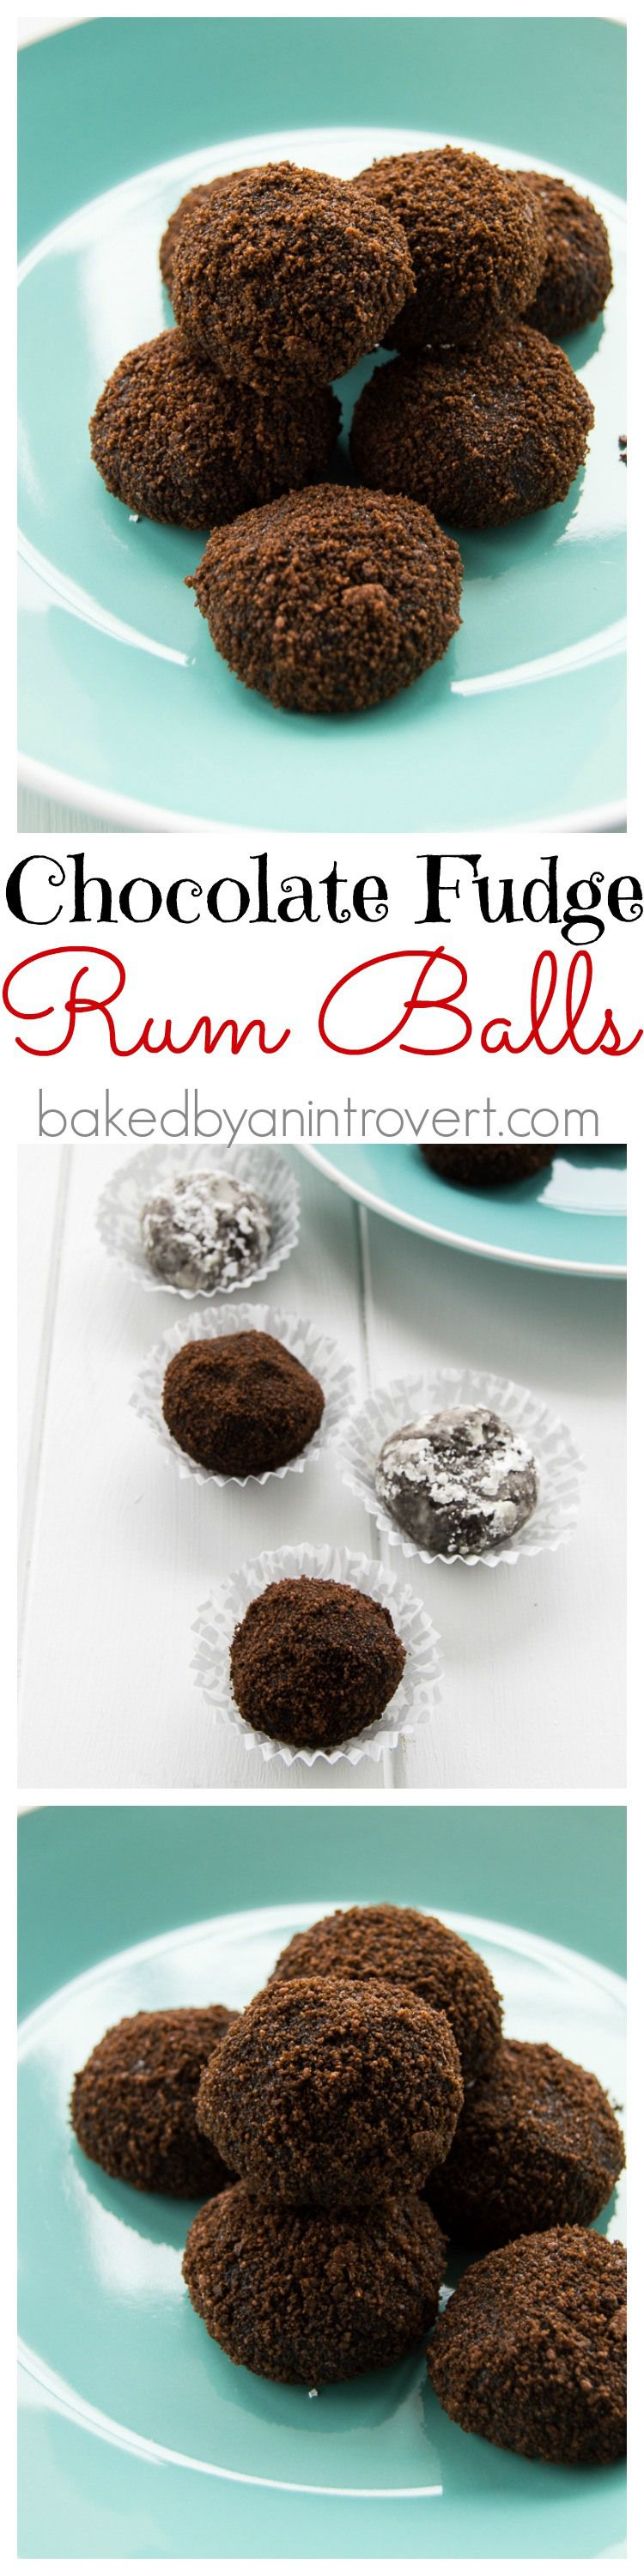 recipe: how to make rum balls with cake [24]